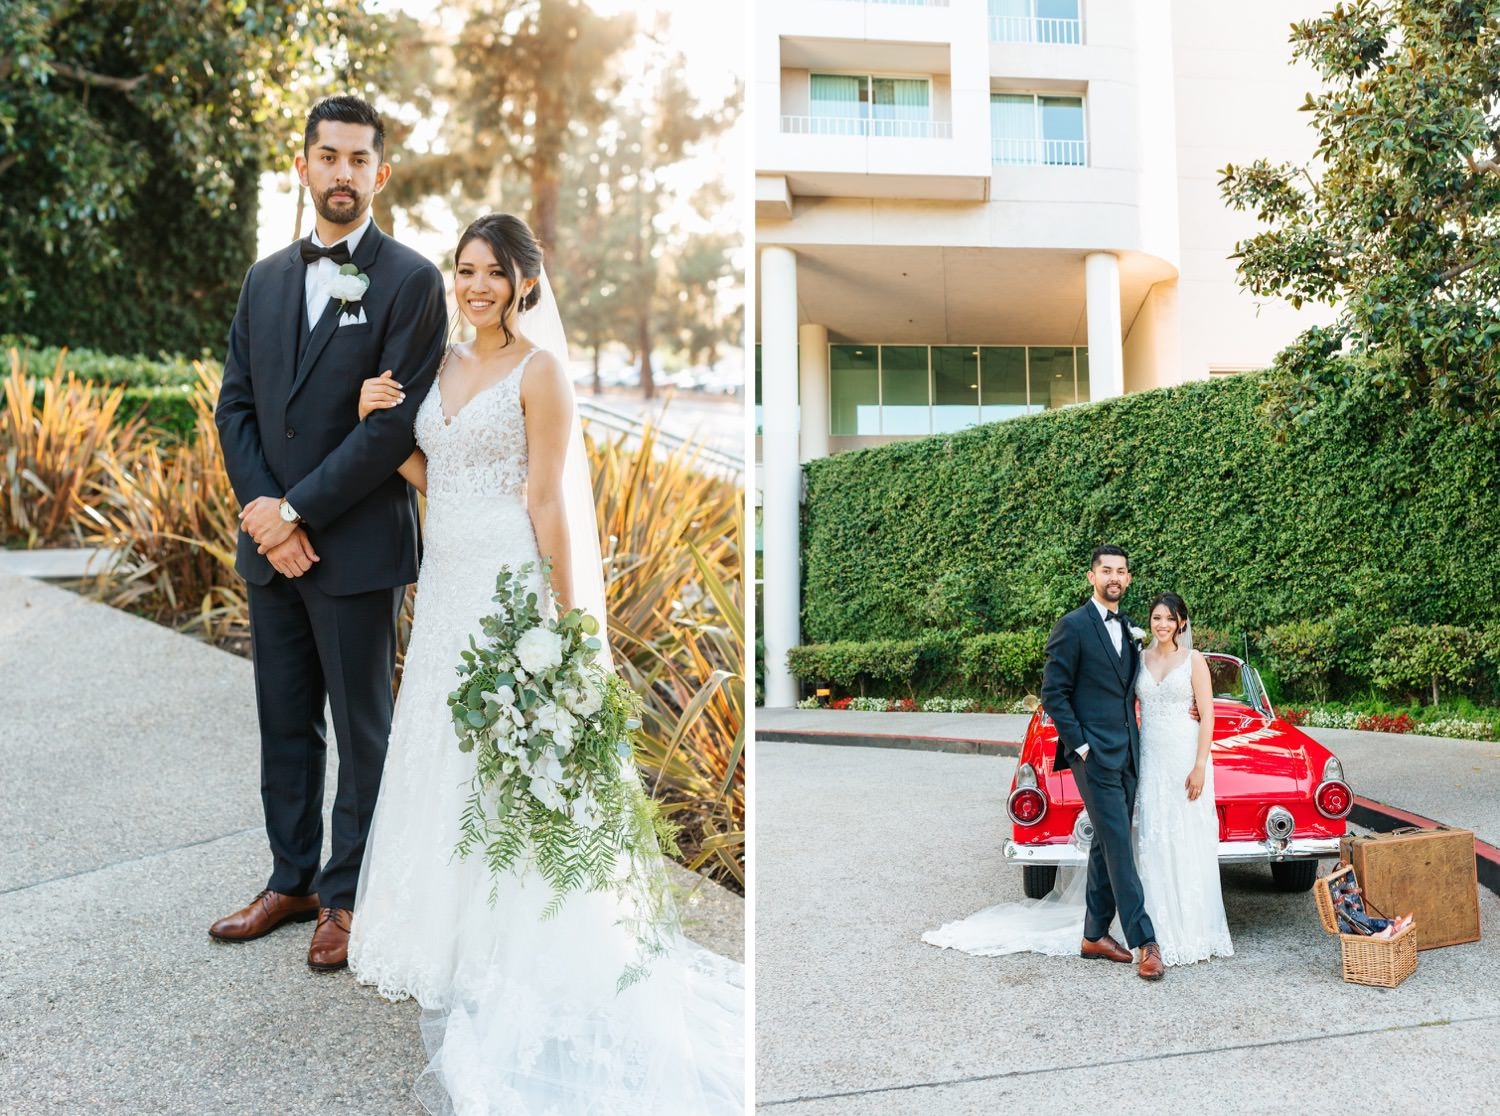 Classic and Timeless Wedding Photographer - https://brittneyhannonphotography.com